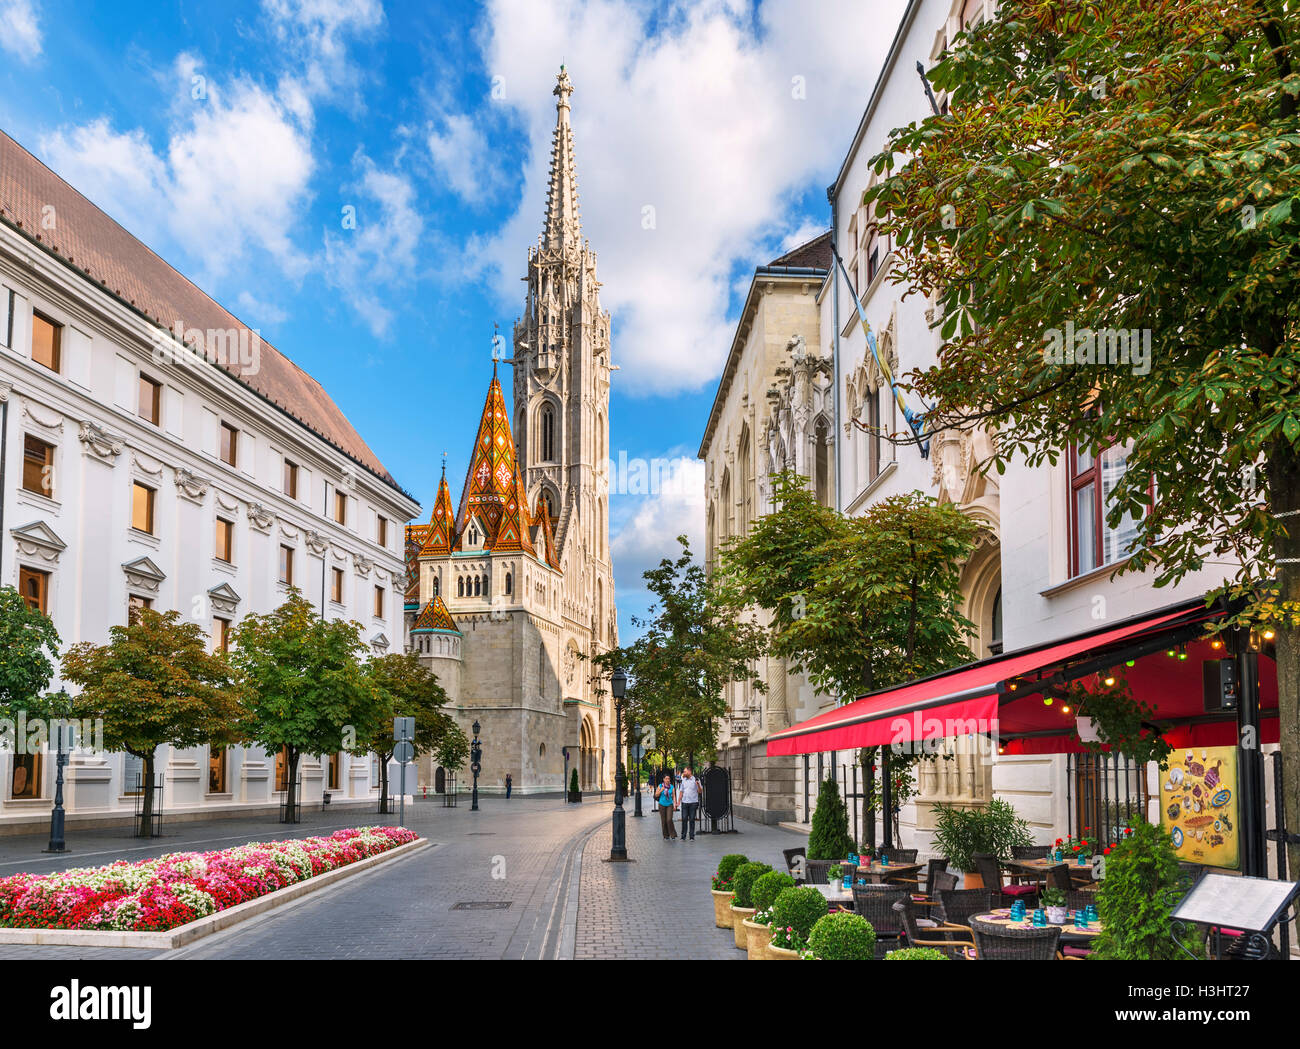 Budapest, Buda, Hungary. Restaurant on Hess András tér looking towards Matthias Church, Buda Castle district, - Stock Image